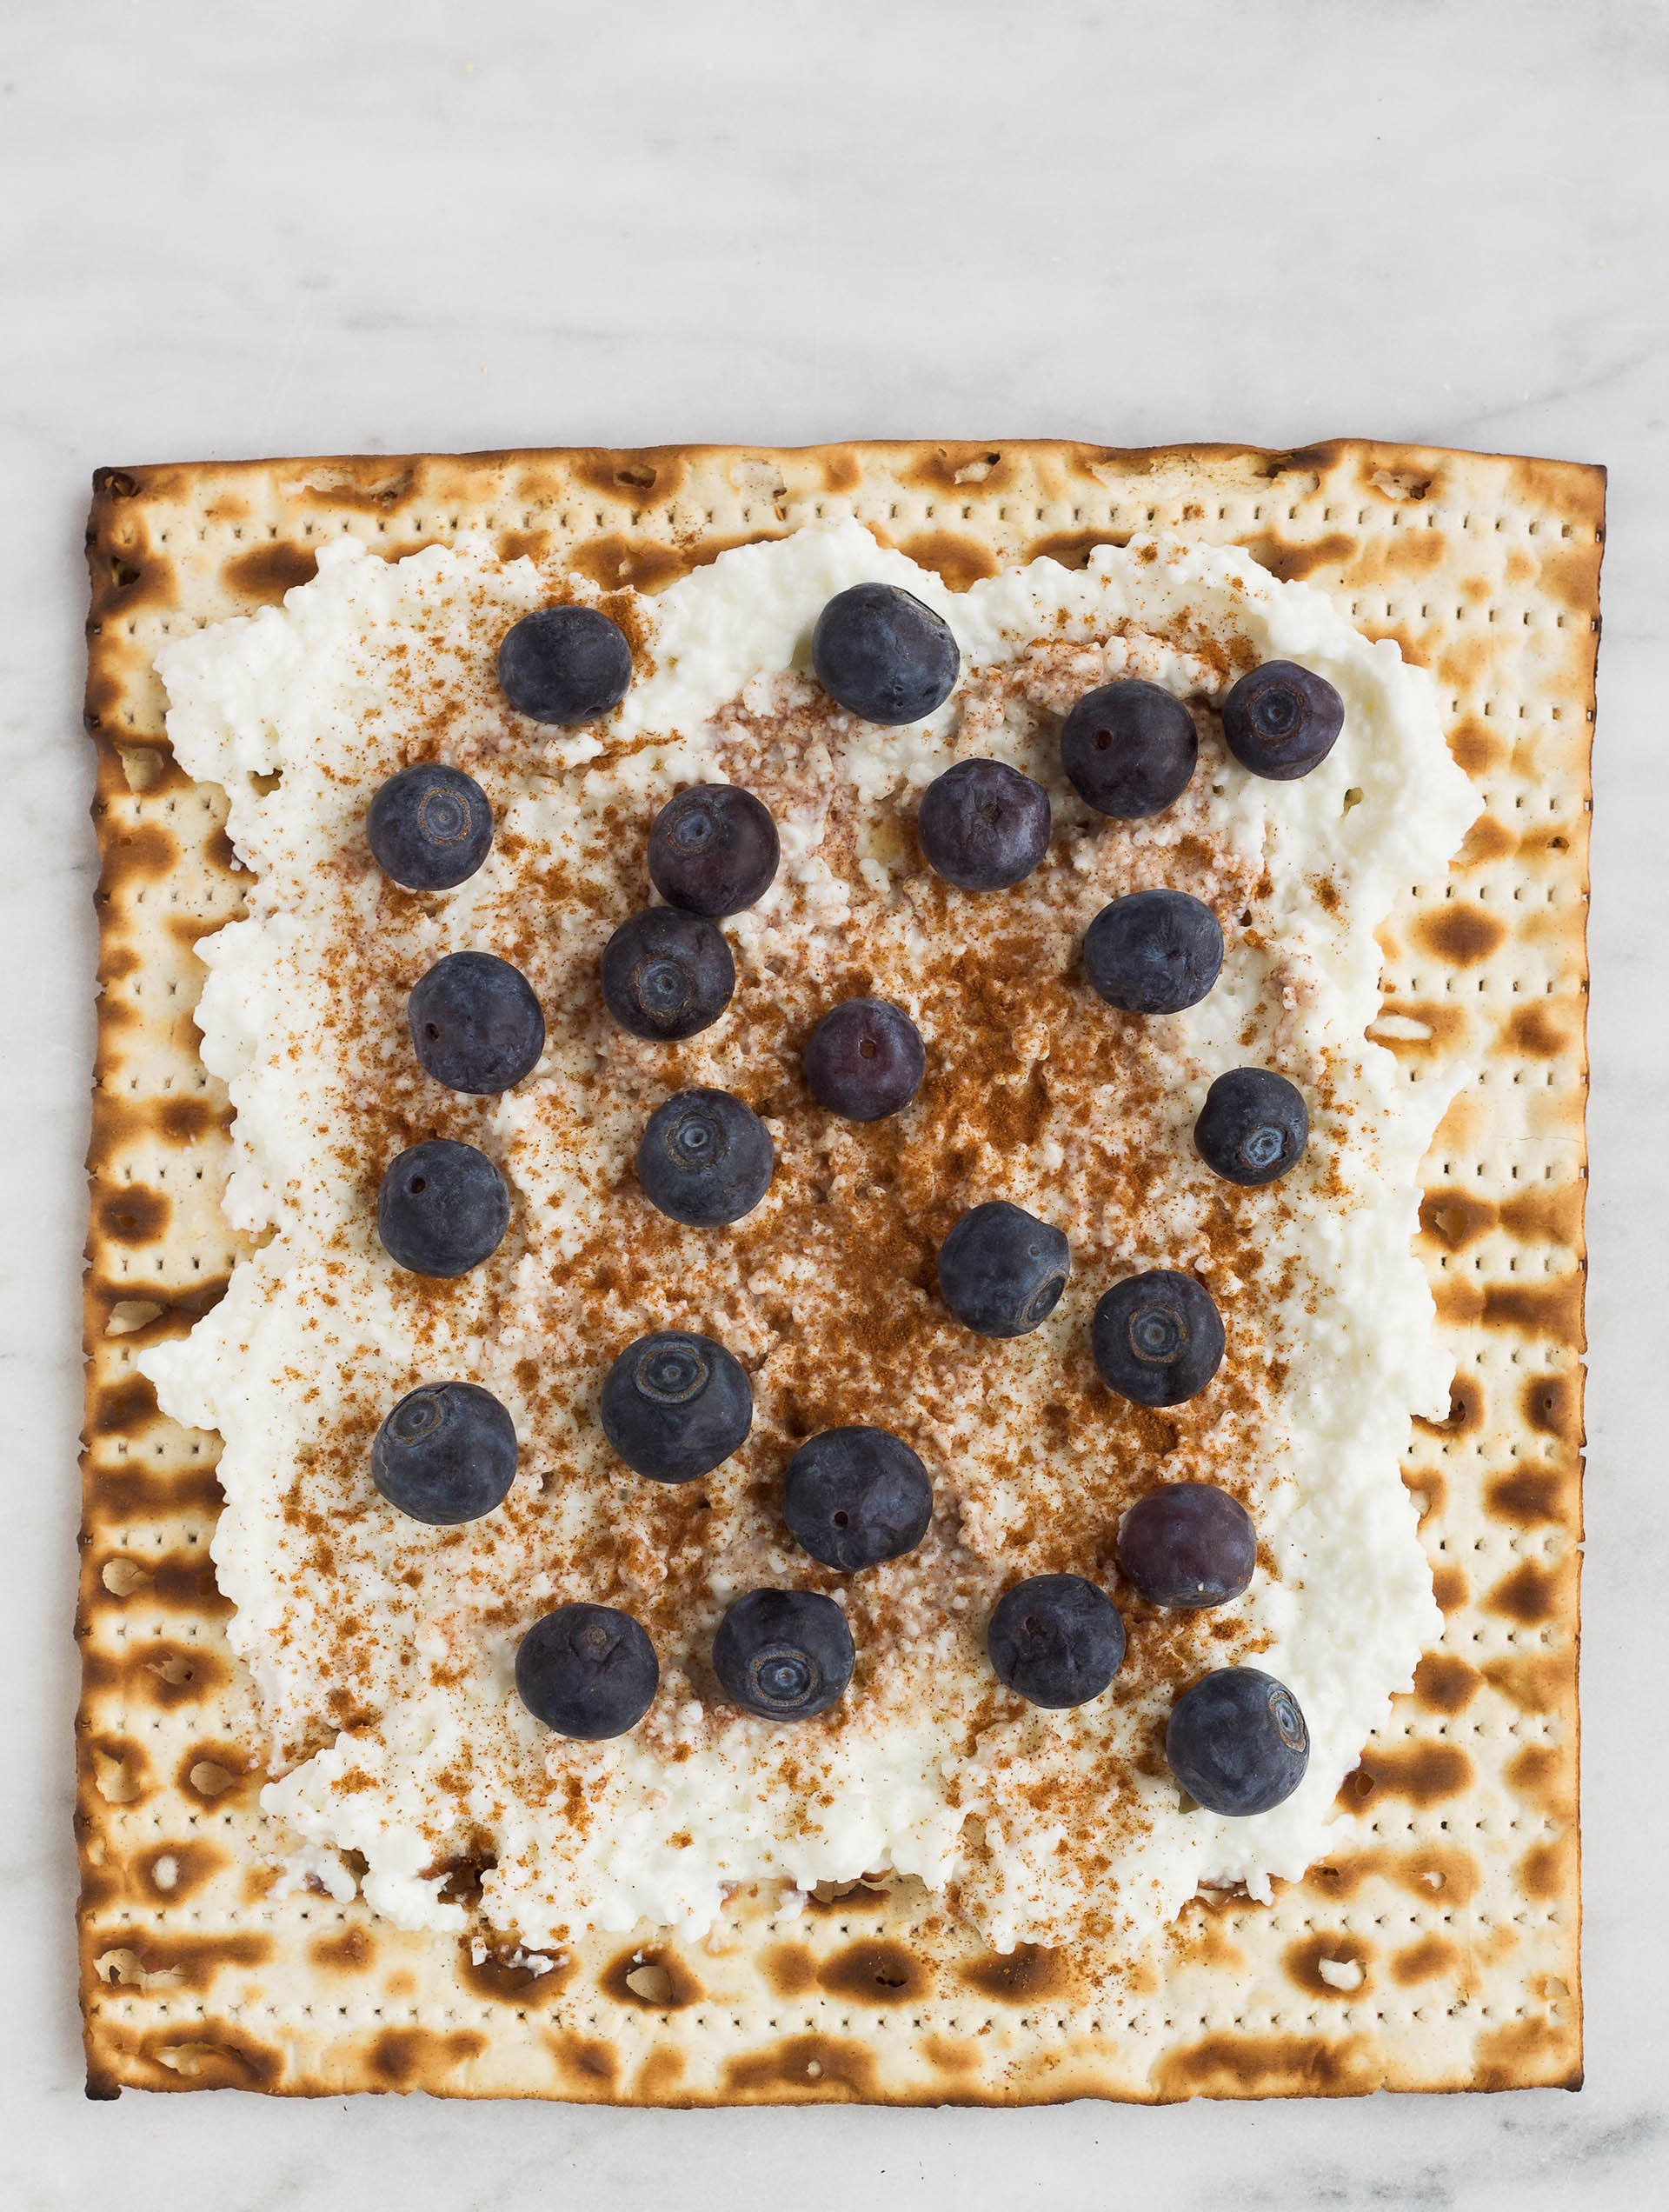 matzah with cottage cheese, blueberries, and cinnamon